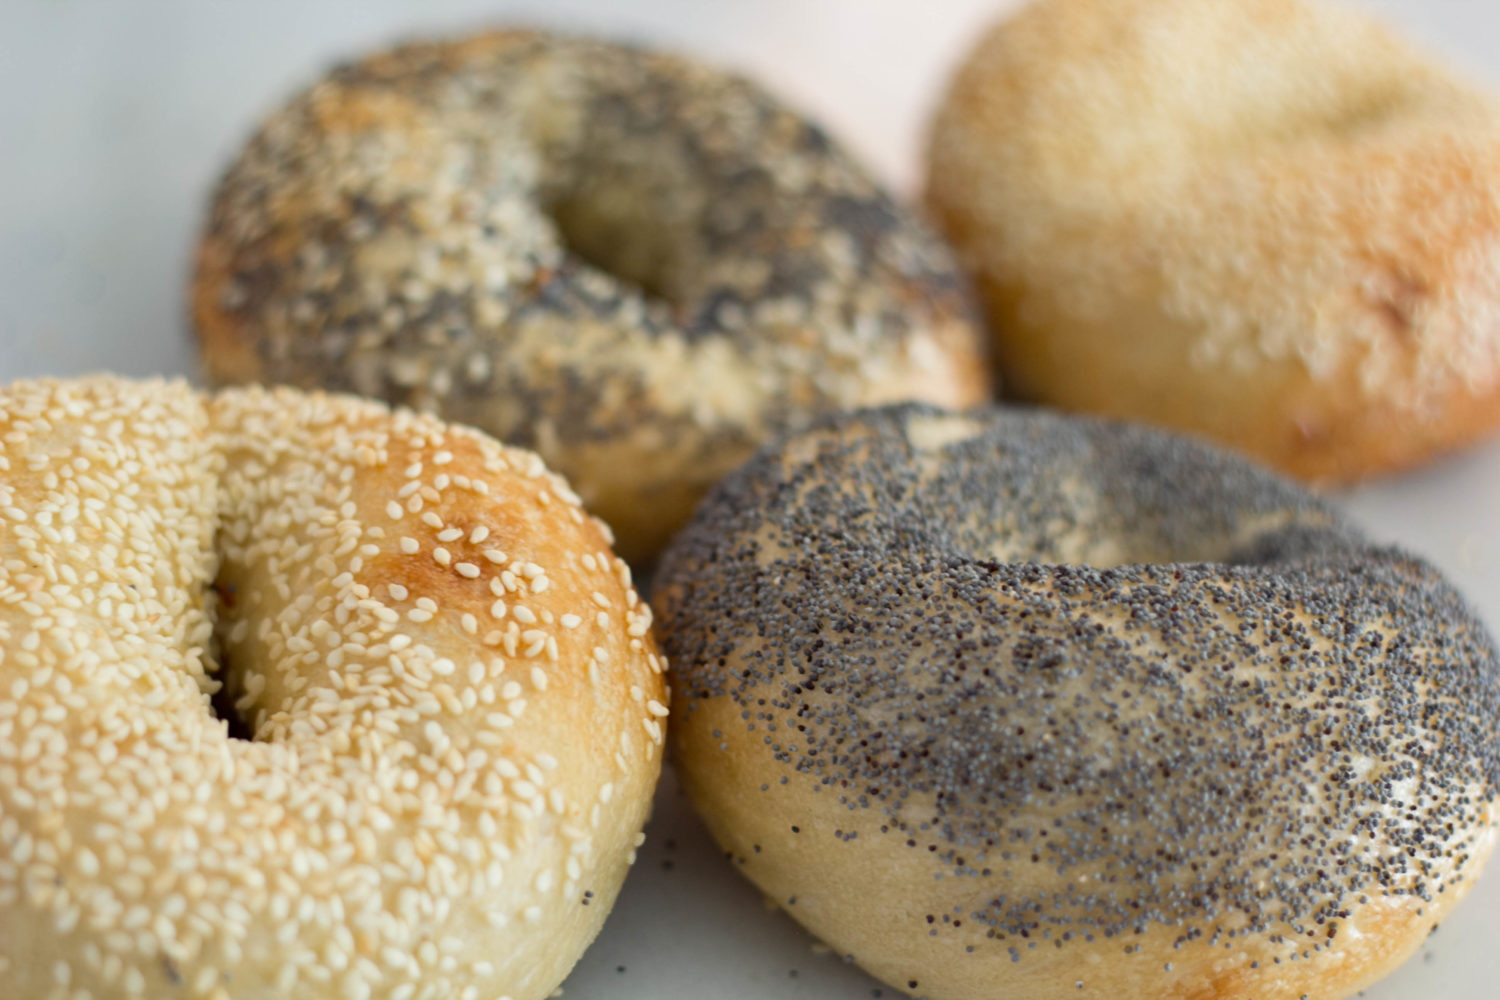 Sesame and poppy seed bagels are a cross between Montreal bagels and New Jersey-style bagels. Photo by Vanessa Mack.